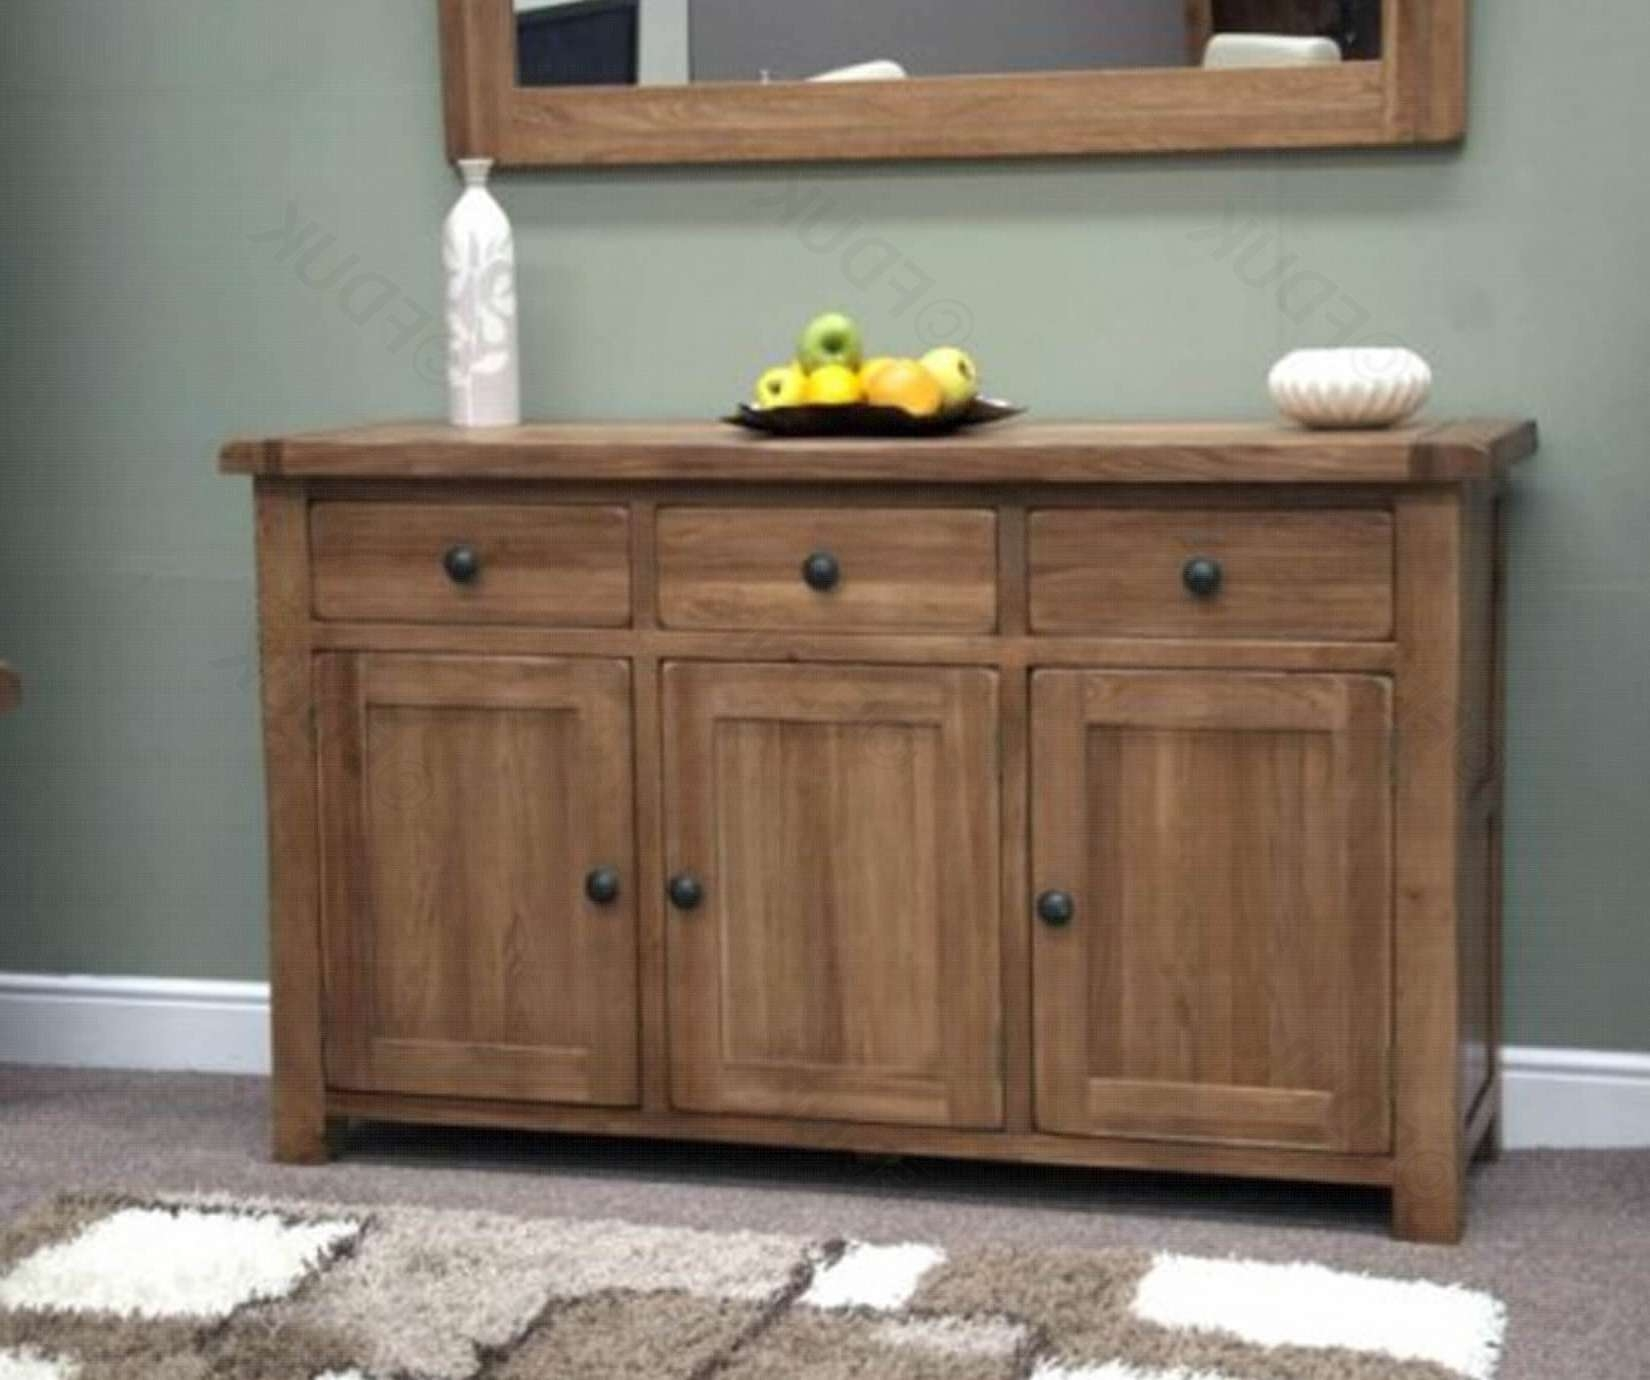 Homestyle Gb | Rustic Oak Large Sideboard | Furnituredirectuk With Regard To Rustic Oak Large Sideboards (View 9 of 20)